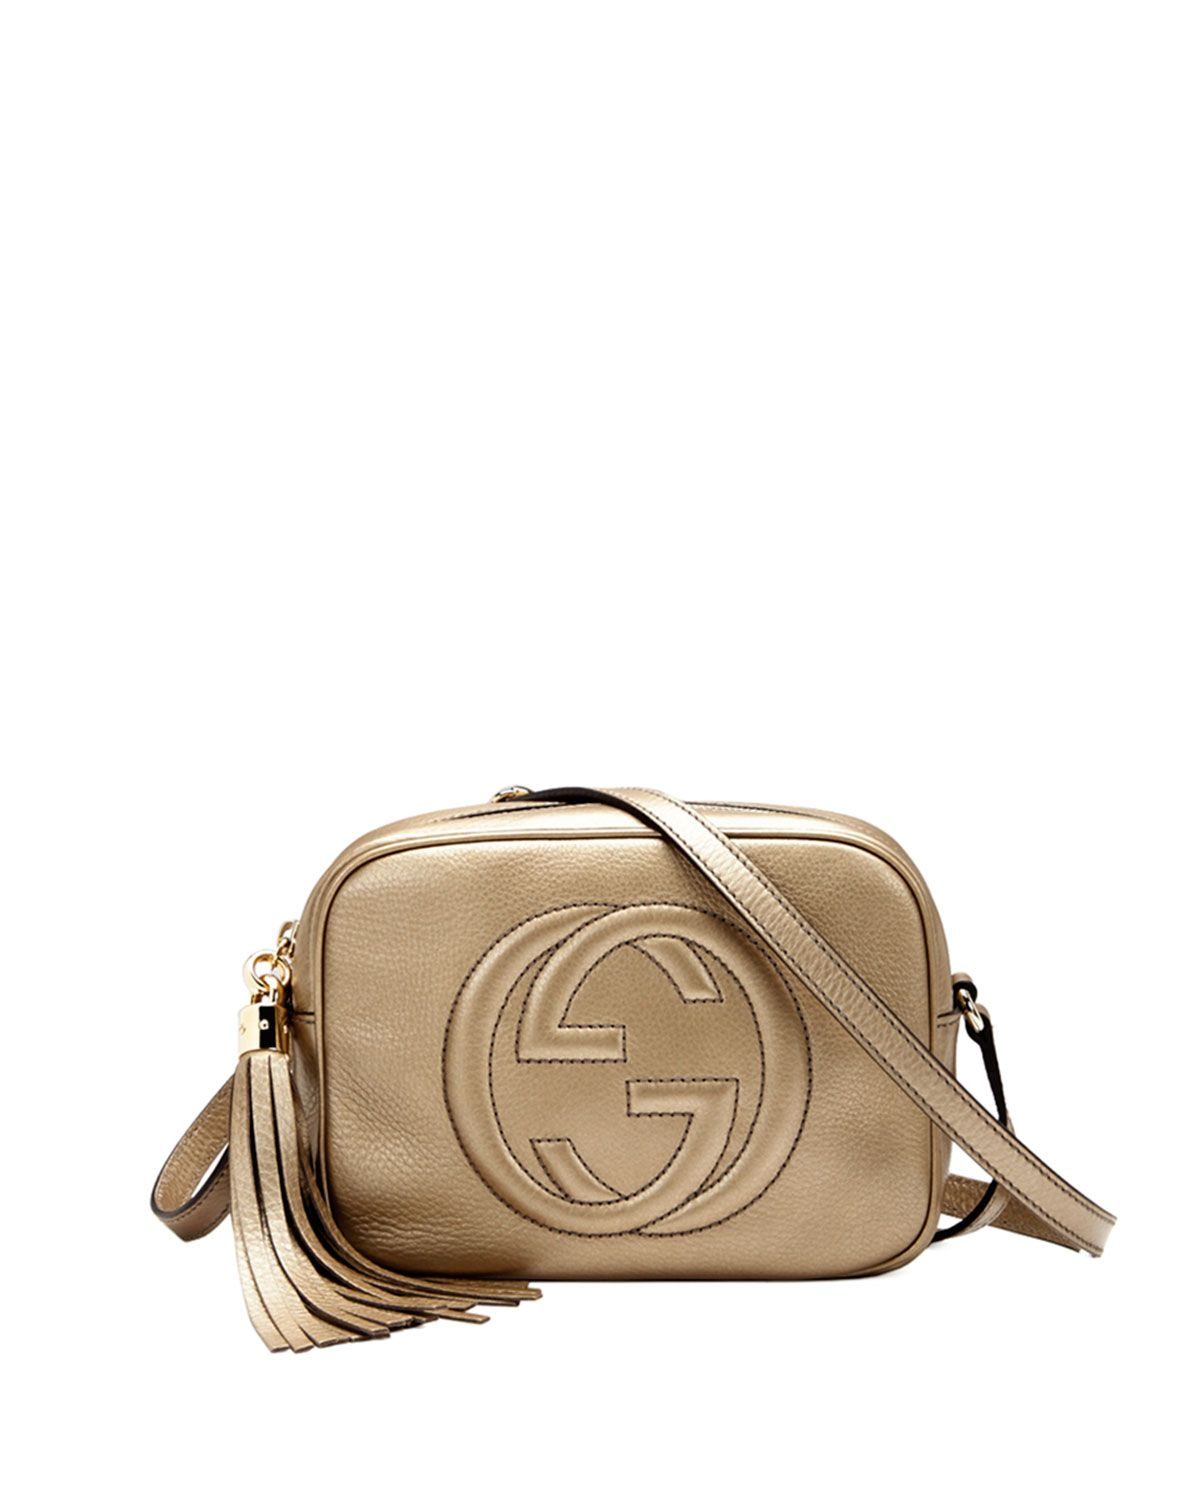 001133a55 Soho Metallic Leather Disco Bag Golden | *Handbags, Wallets & Cases ...